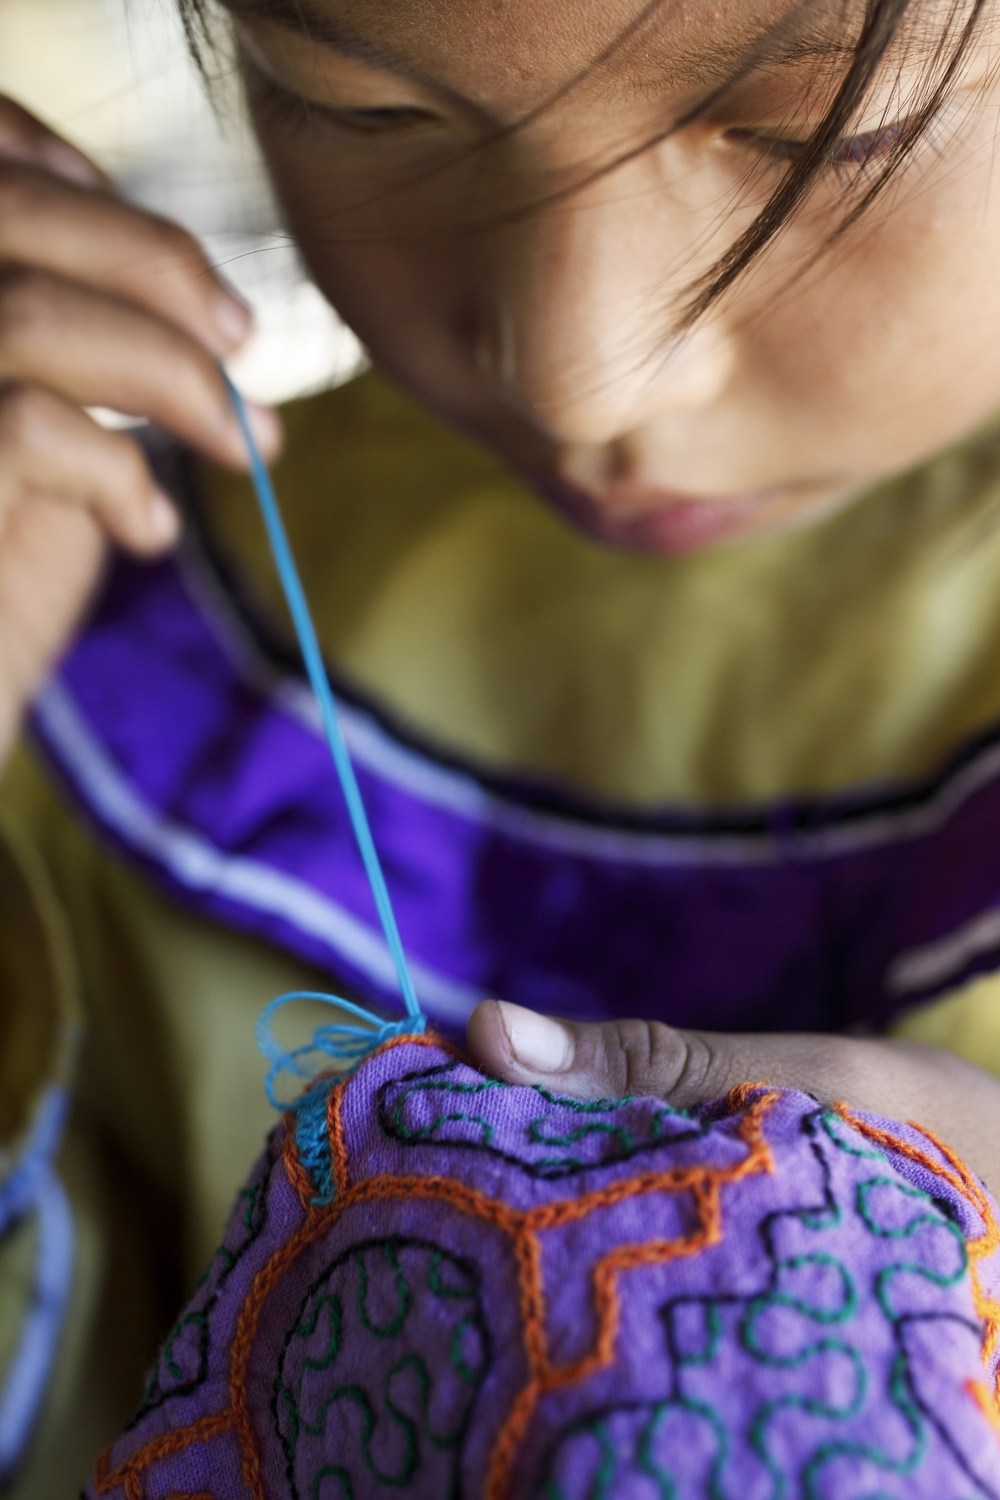 Shipibo girl bent over her embroidery work, practicing the patterns that have made her people internationally renowned as skilled visionary artists (Photo Alianza Arkana)